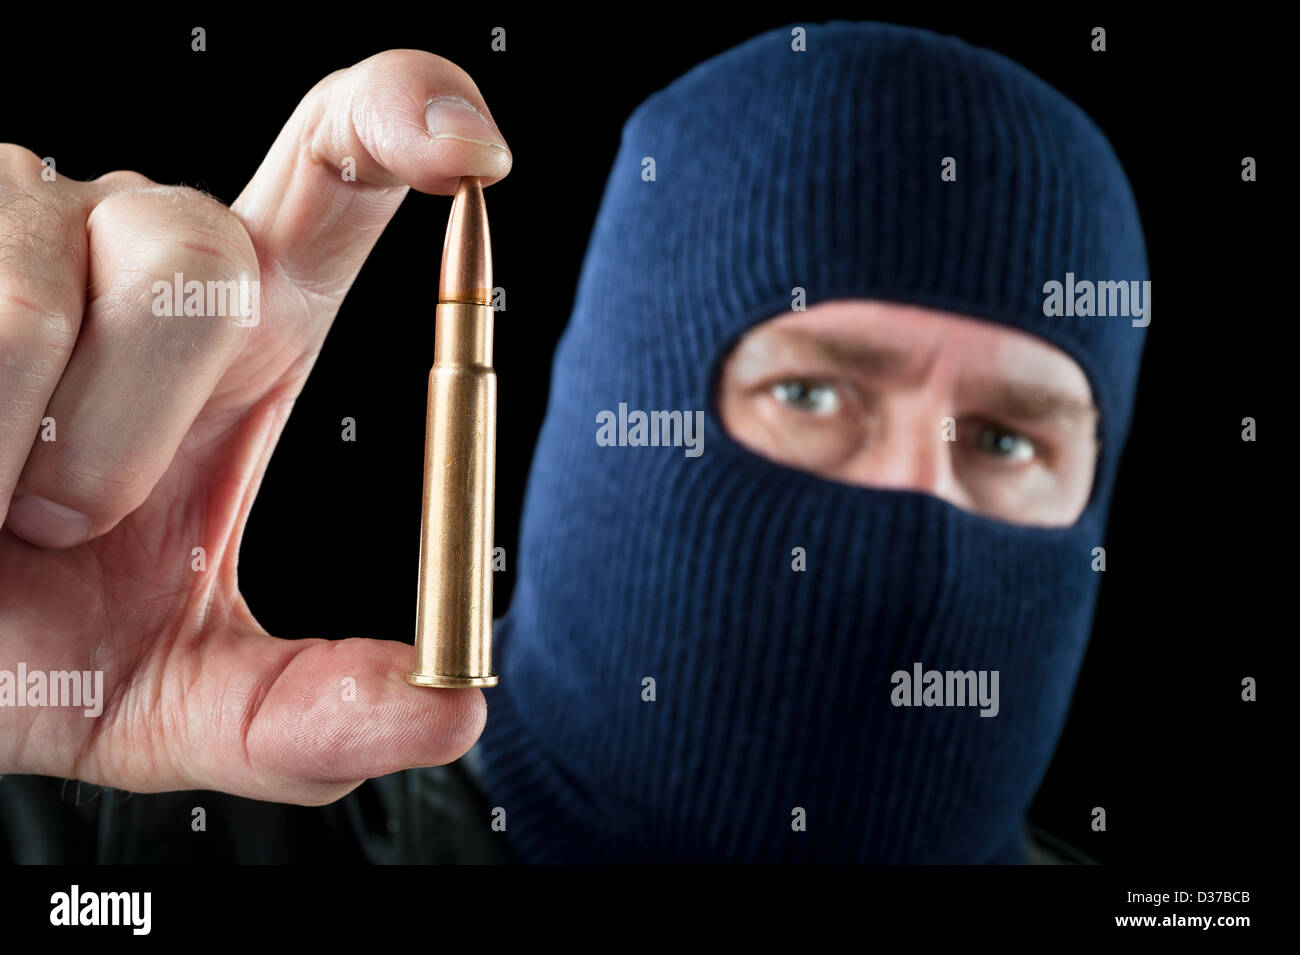 A terrorist wearing a ski mask as a disguise holds out a large automatic rifle bullet. - Stock Image